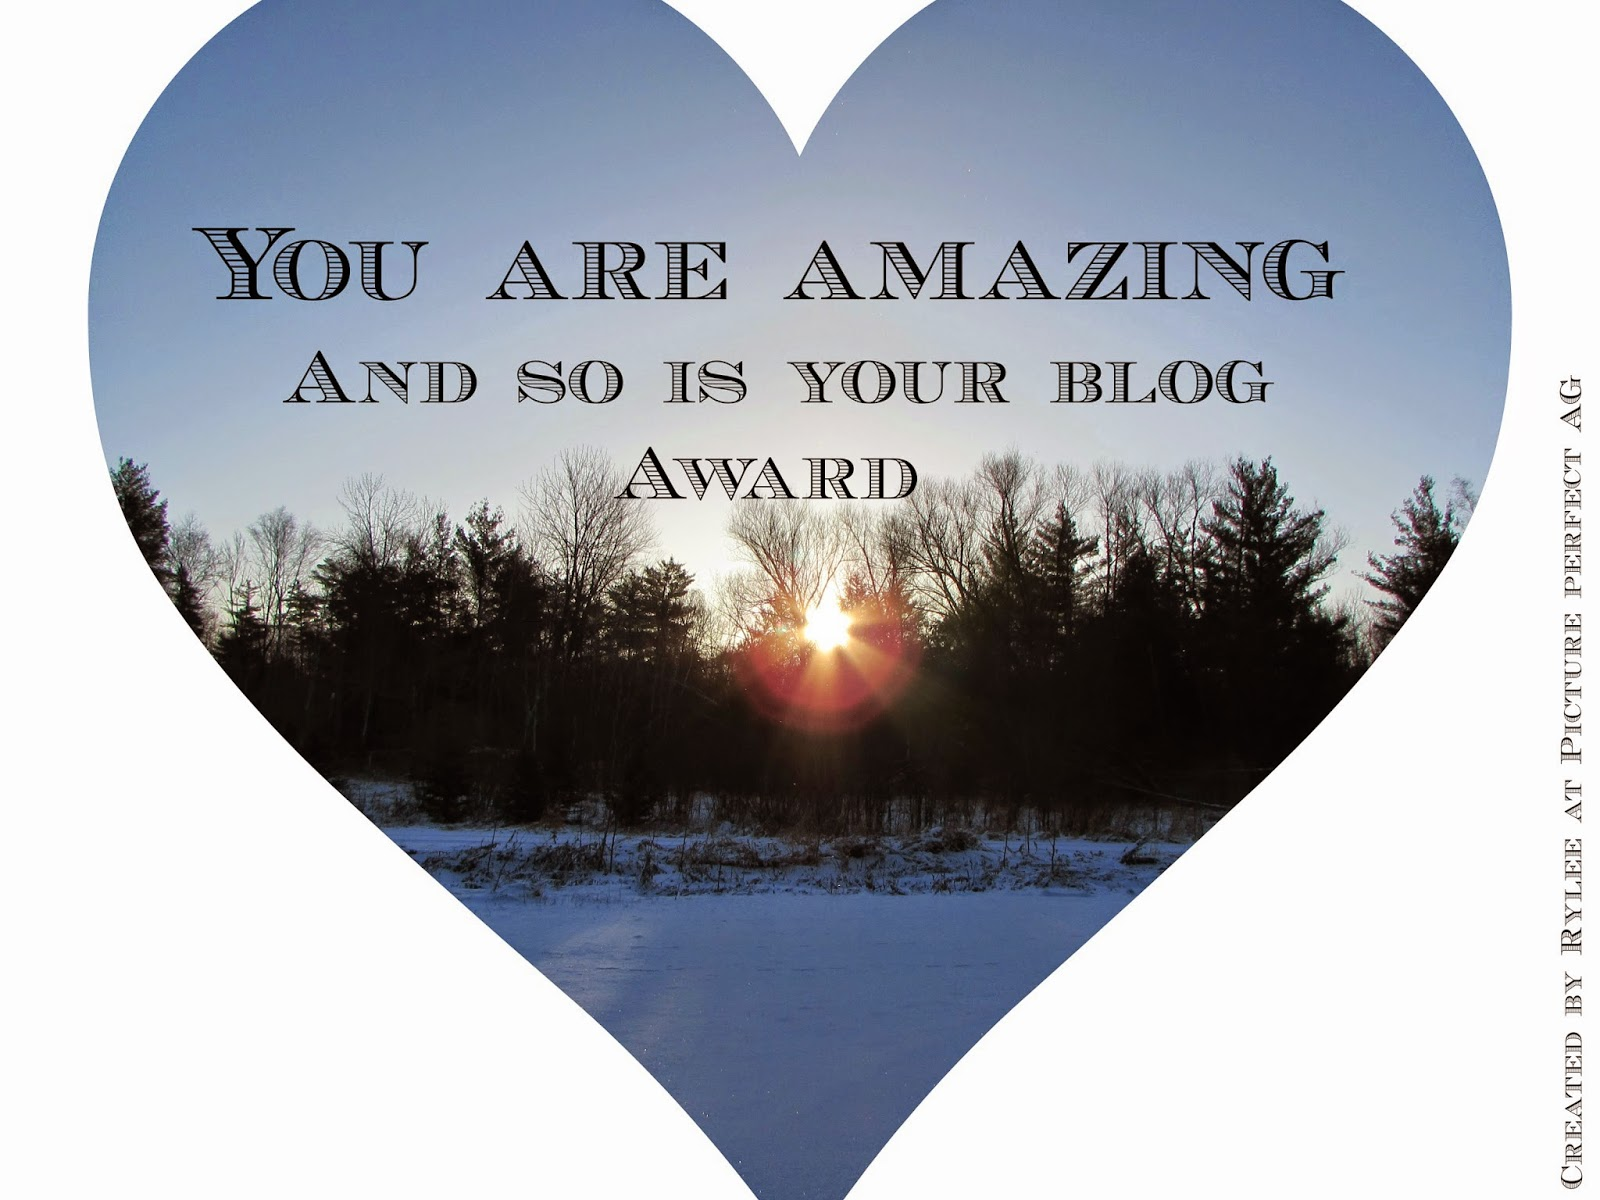 You Are Amazing and so is Your Blog Award